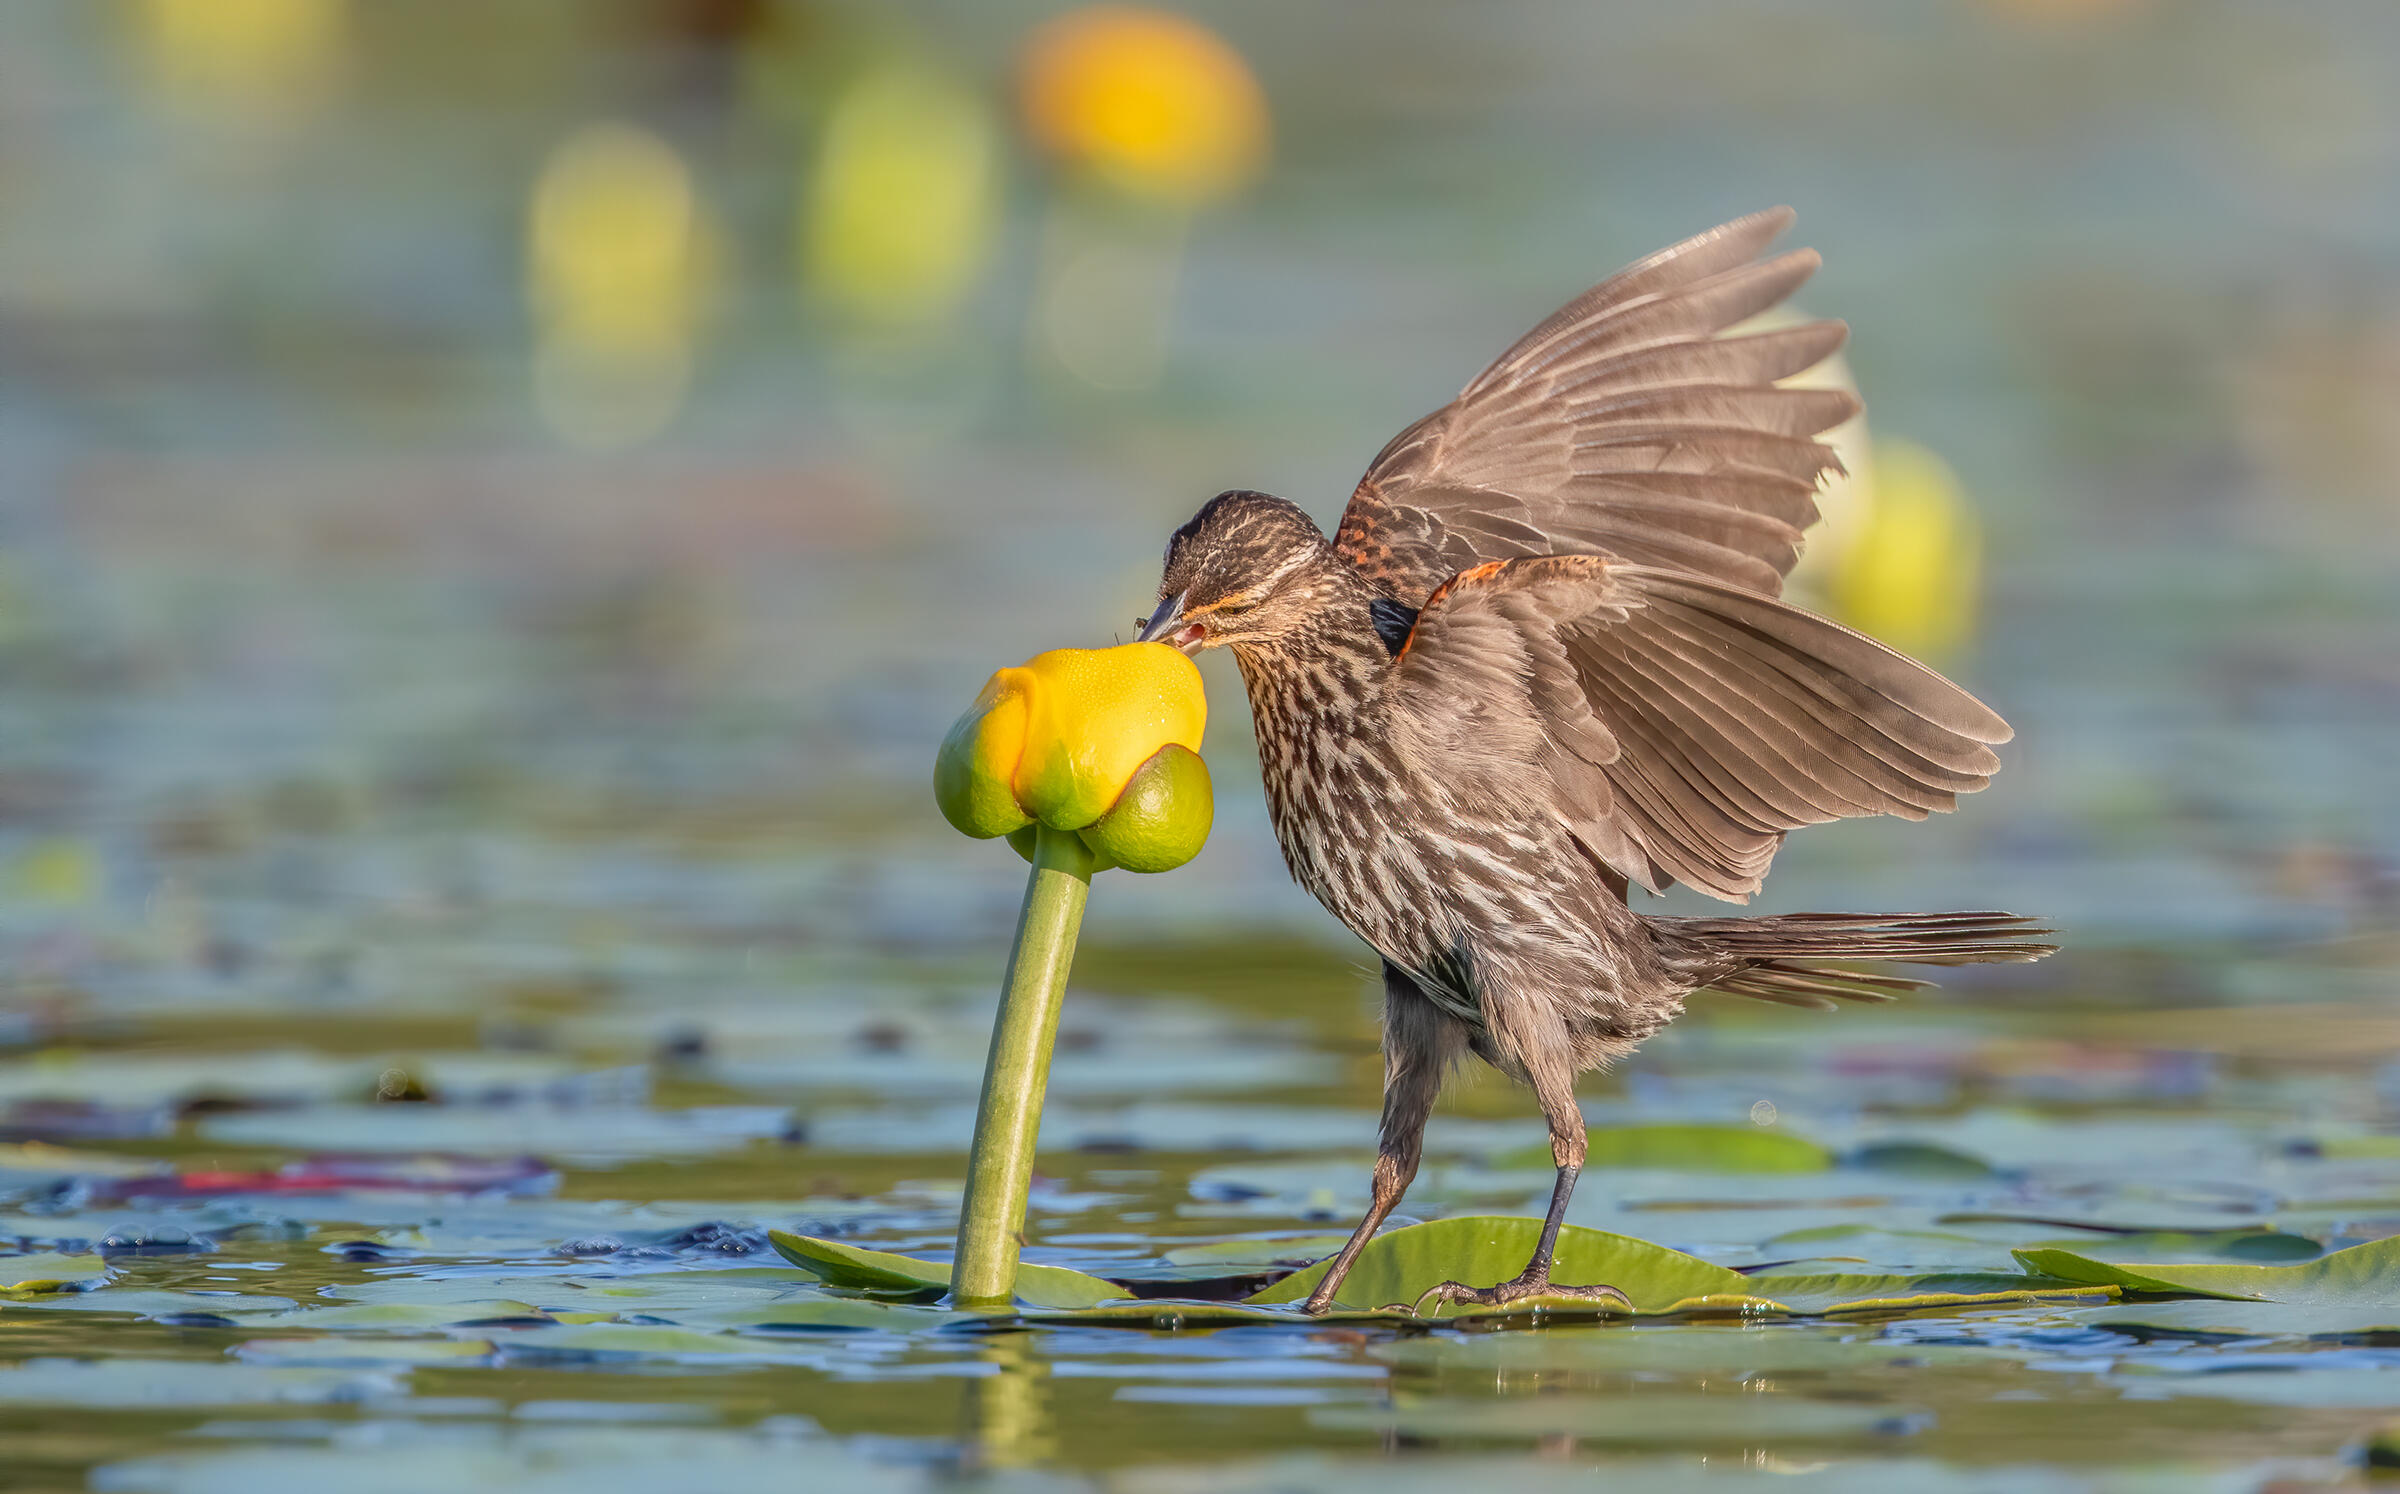 Beak deep in a partially opened, yellow flower emerging from the water, a gray female Red-winged Blackbird stands balancing on a lily pad, her wings partially outstretched, revealing the touch of red on her shoulders. More yellow flowers color the background.